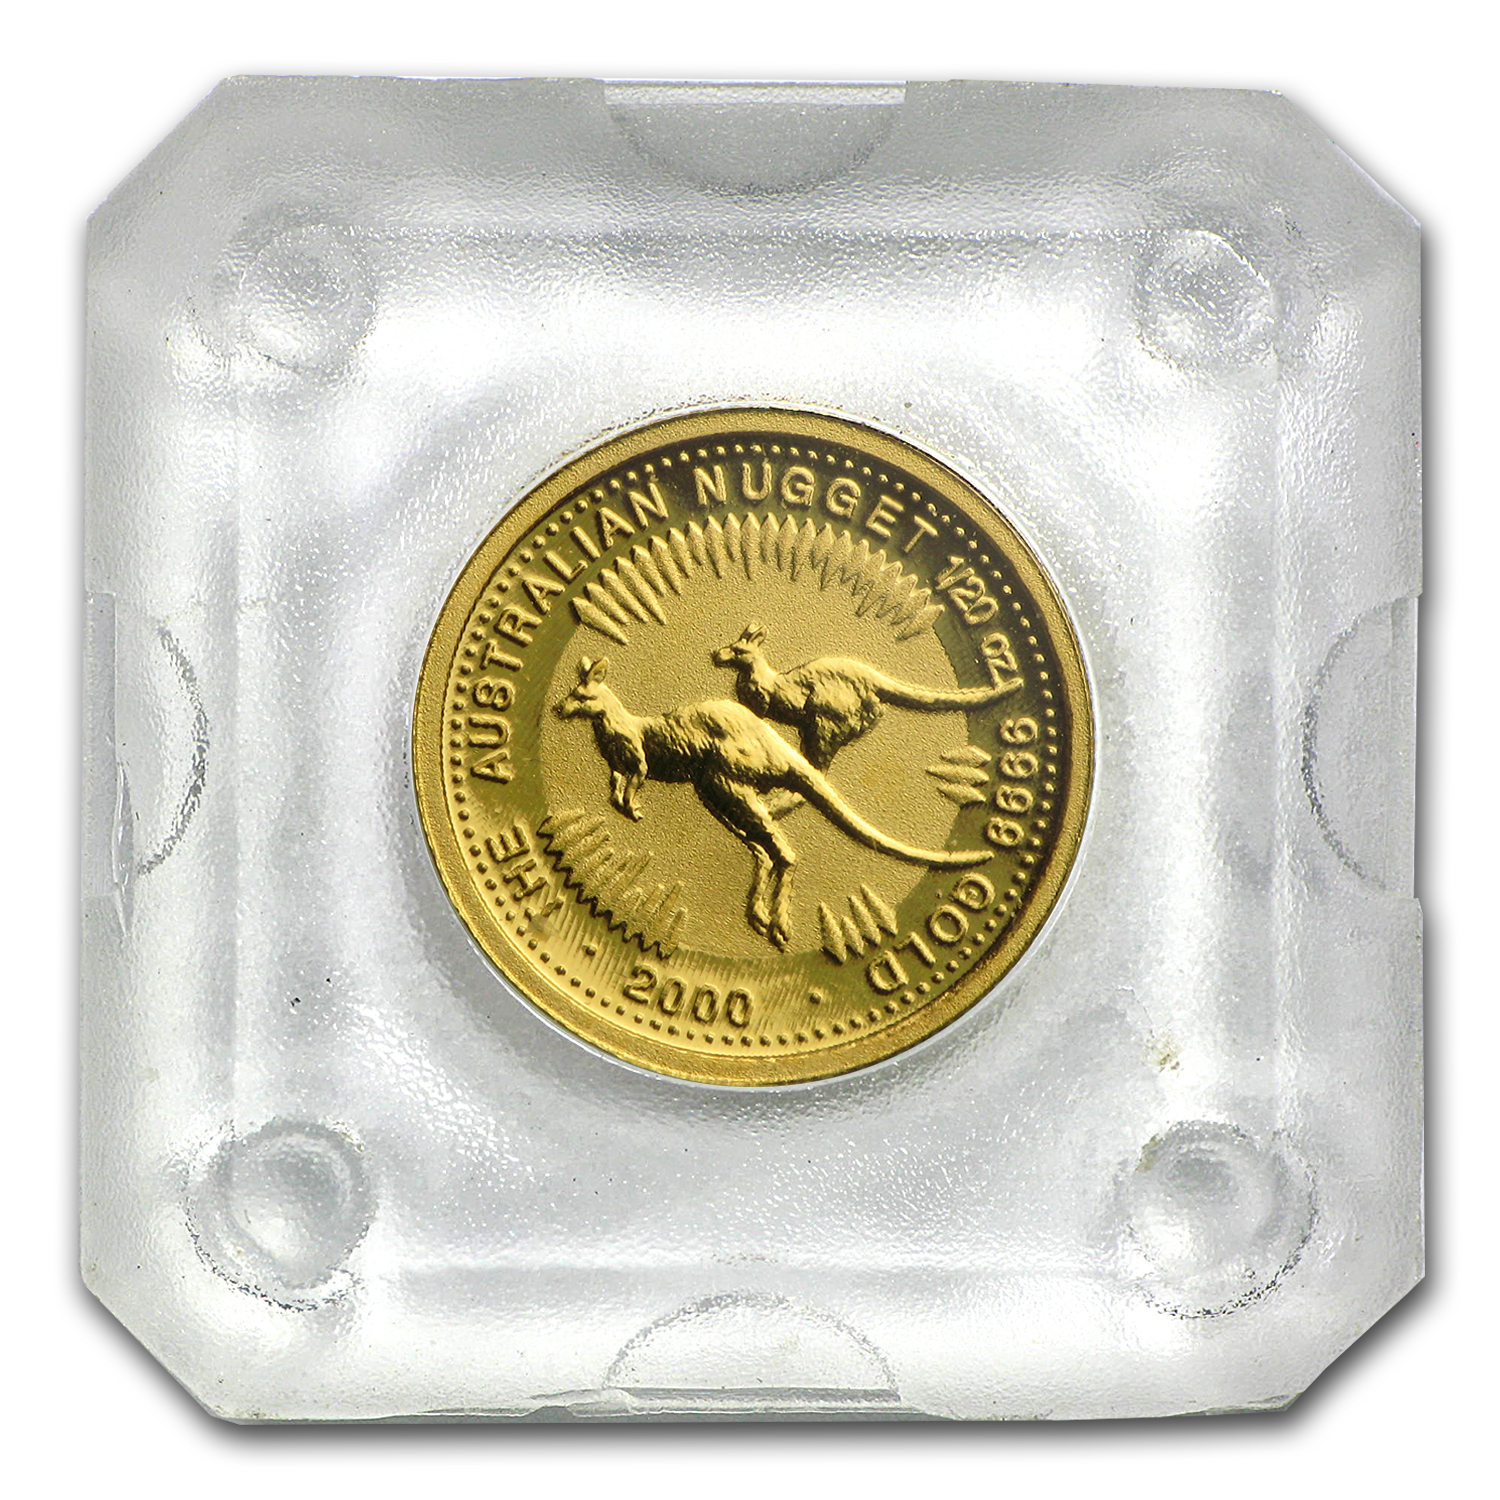 2000 1/20 oz Australian Gold Nugget